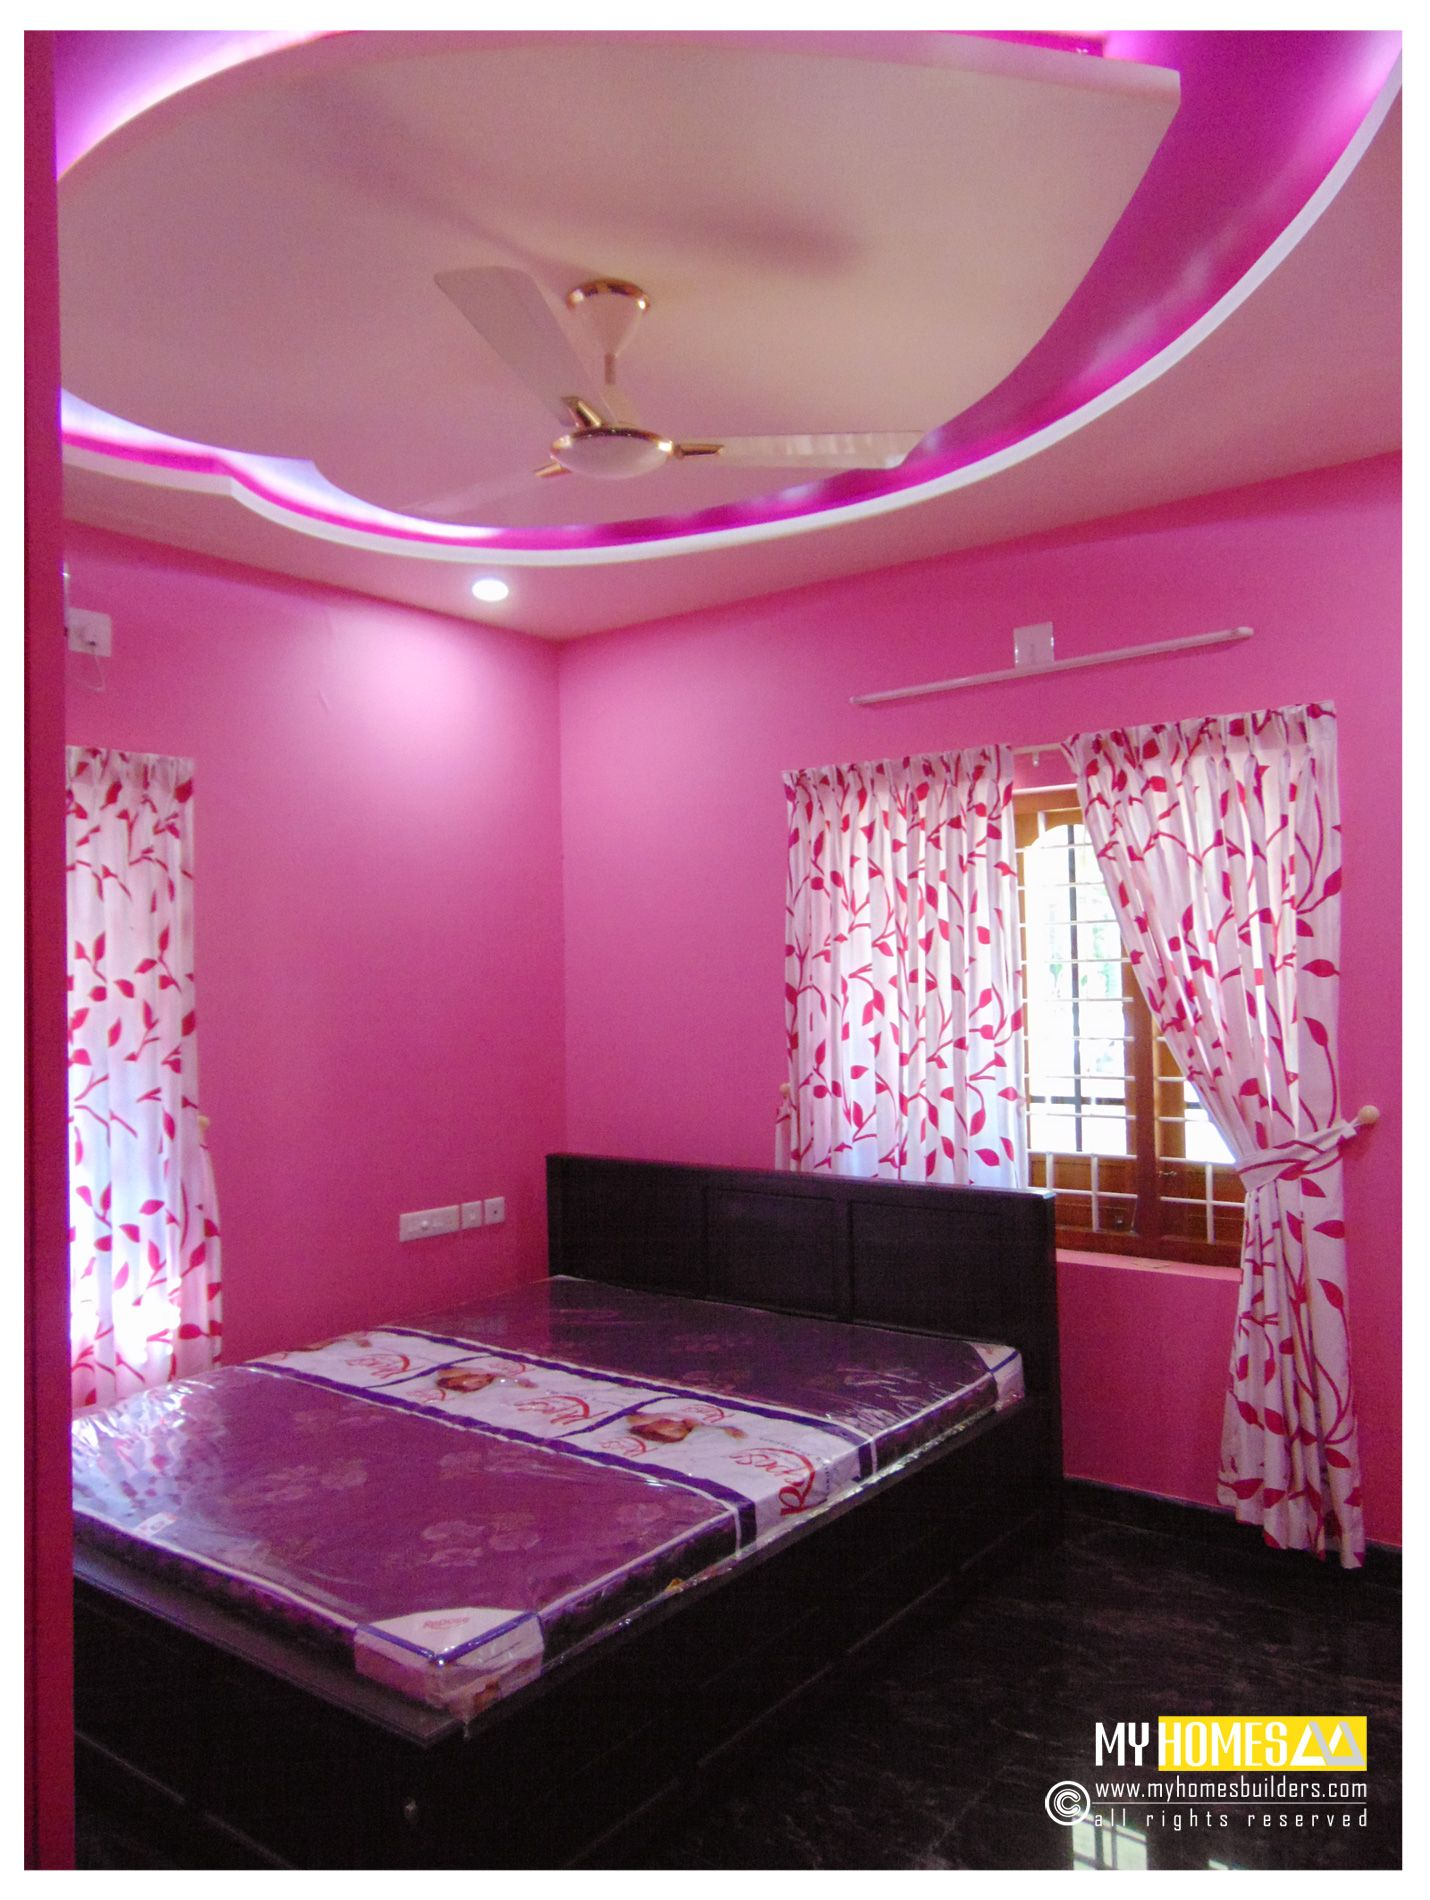 Kerala bedroom interior designs best bed room interior for Kerala interior designs